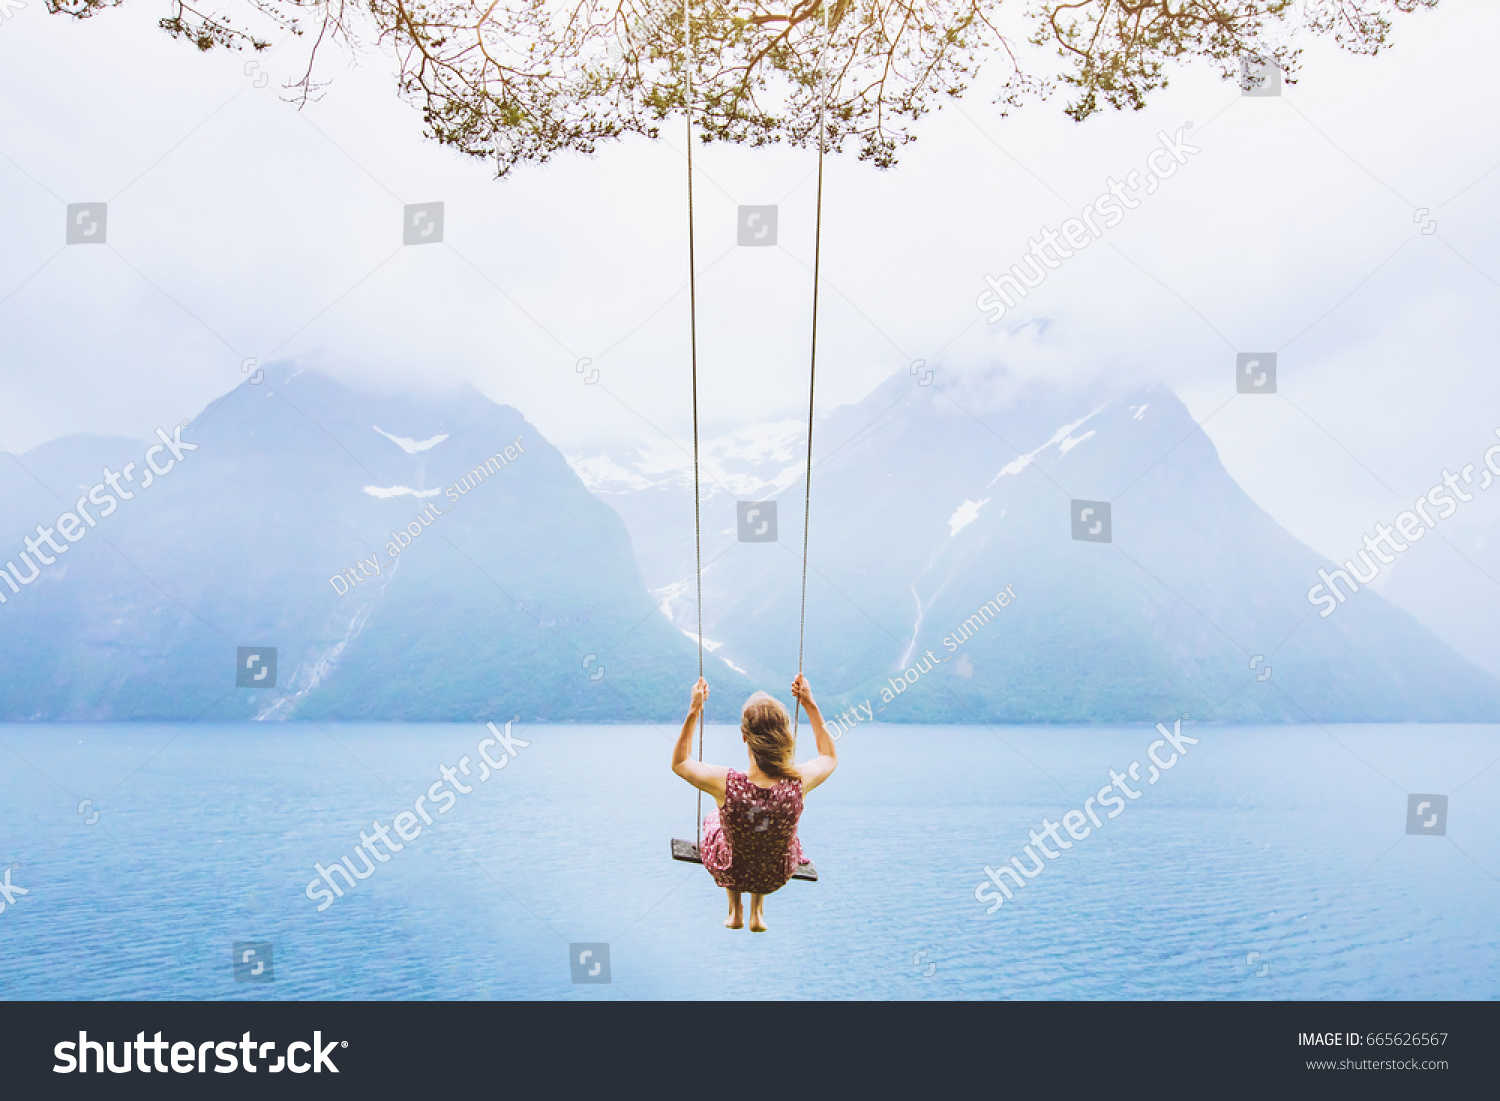 dream concept, beautiful young woman on the swing in fjord Norway, inspiring landscape #665626567